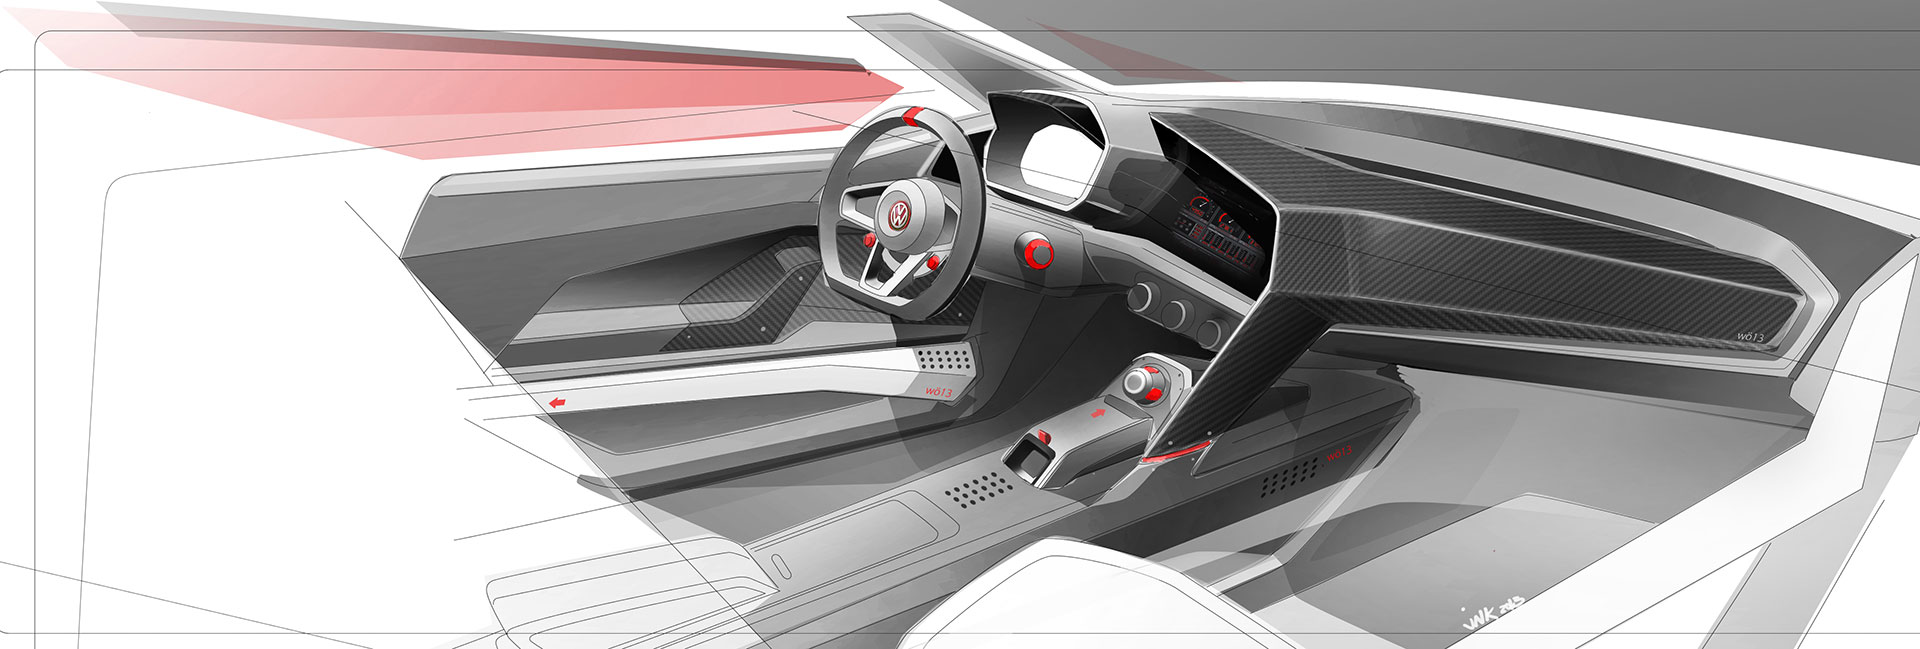 Volkswagen previews design vision gti concept car body - Car interior design ...